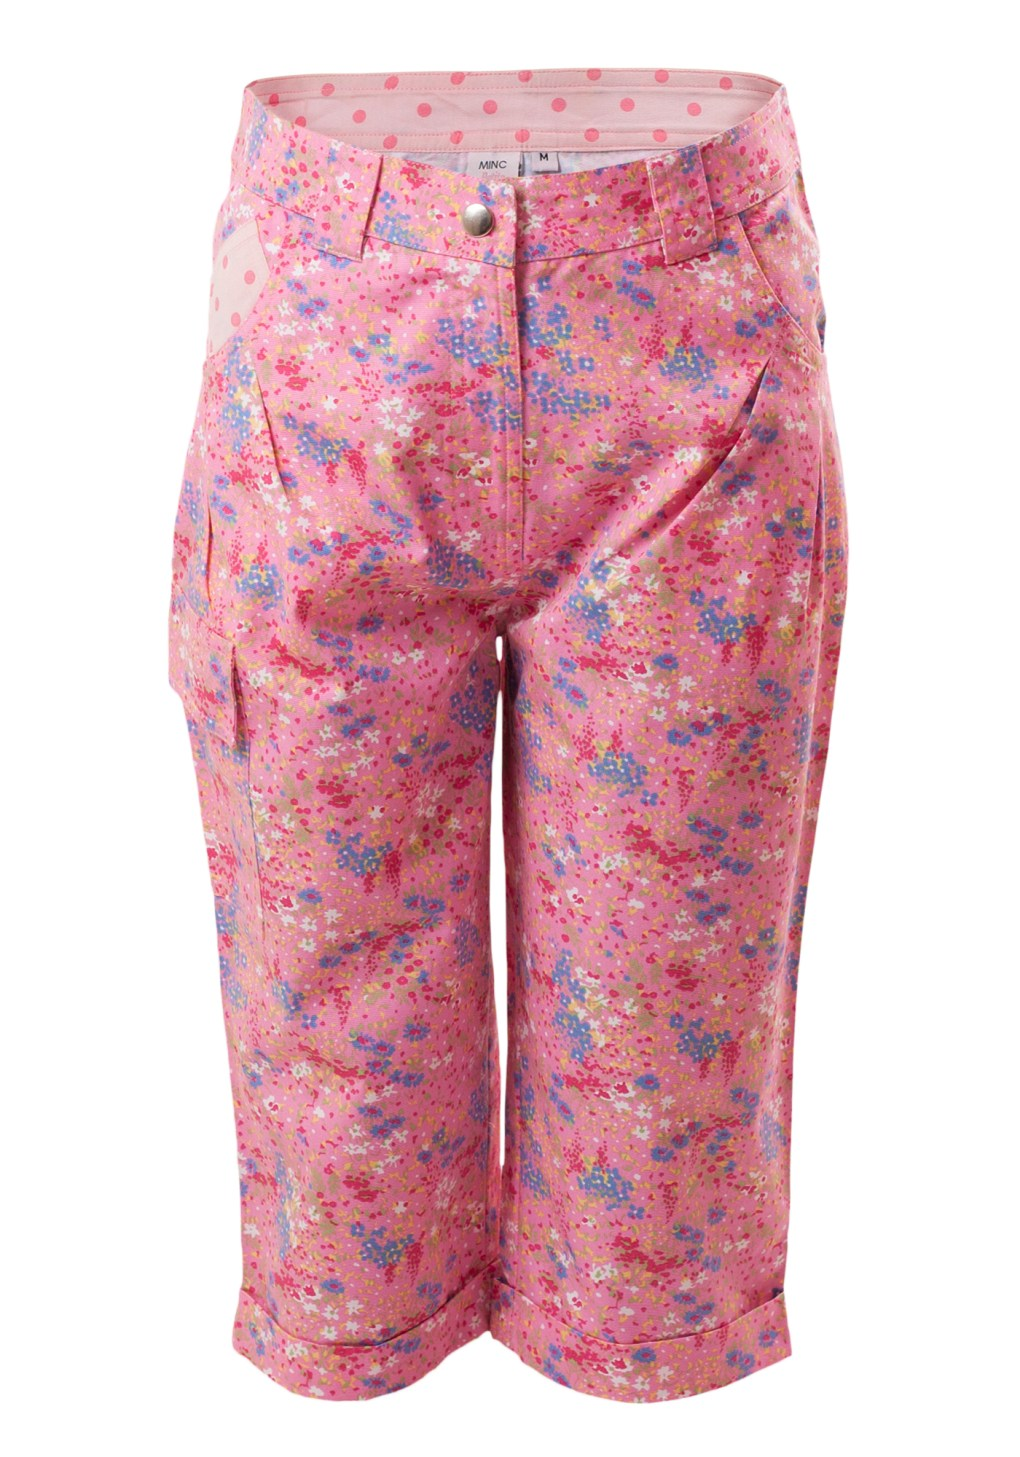 MINC Petite Long Shorts in Floral Printed Pink with front Zipper and Button Closure